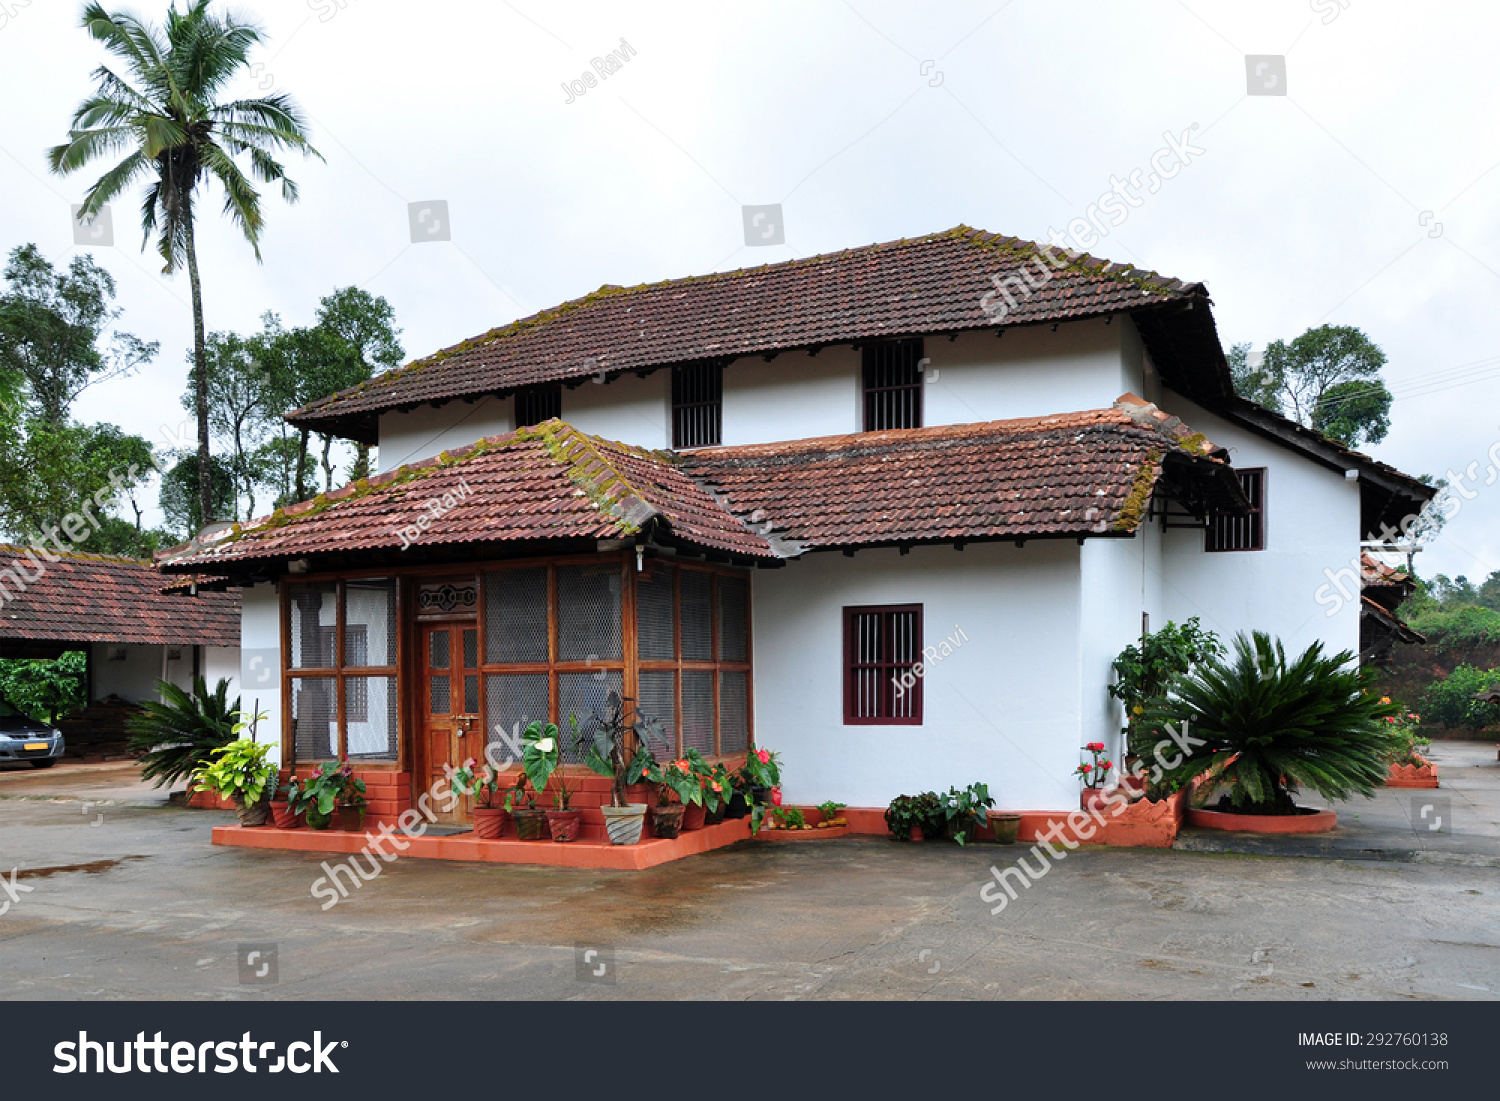 Traditional Kerala Style House In India.